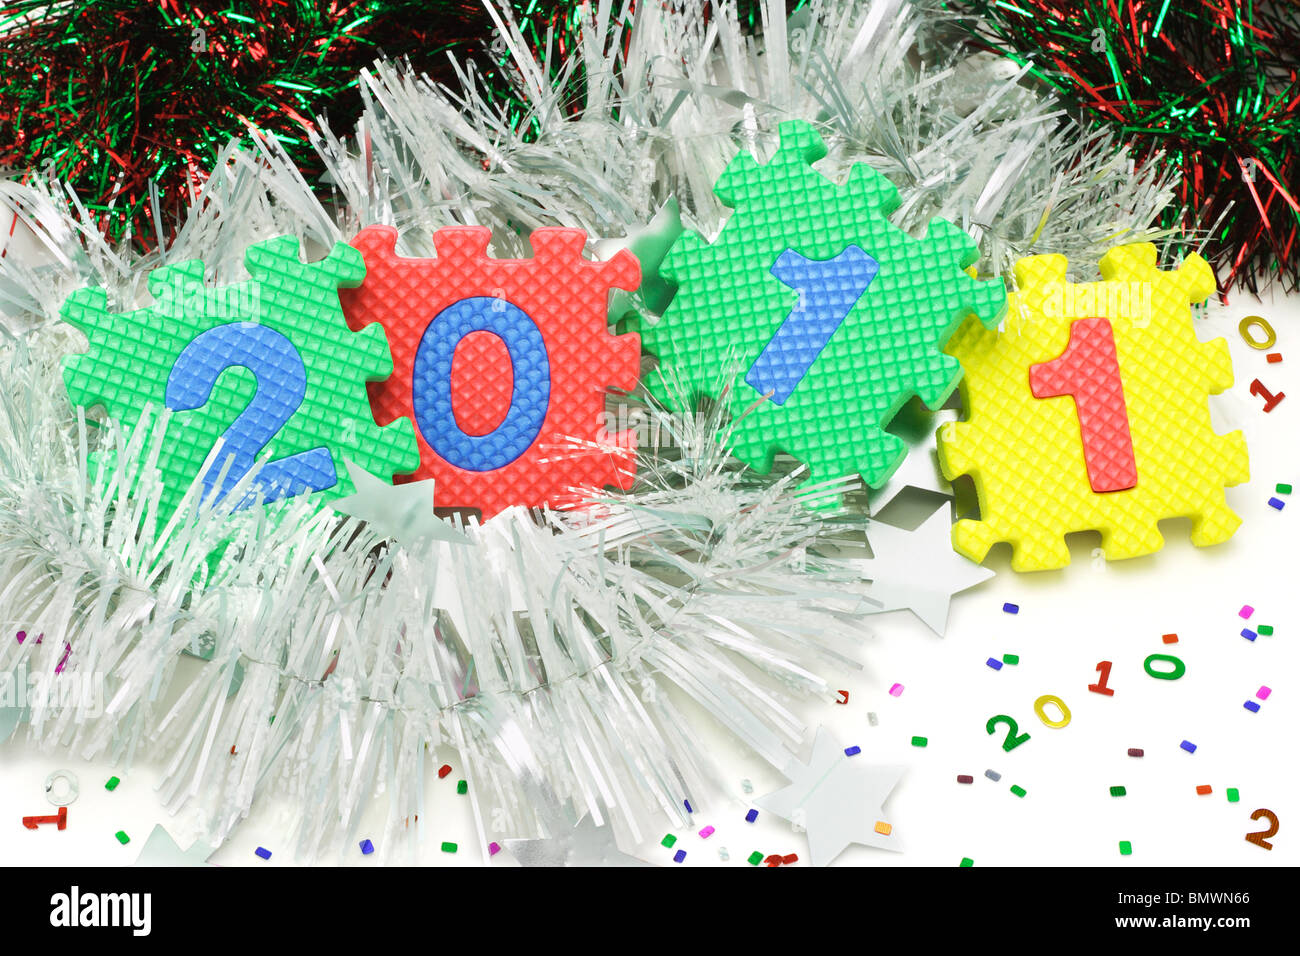 Colorful numeric foam blocks arranged to form 2011 new year - Stock Image